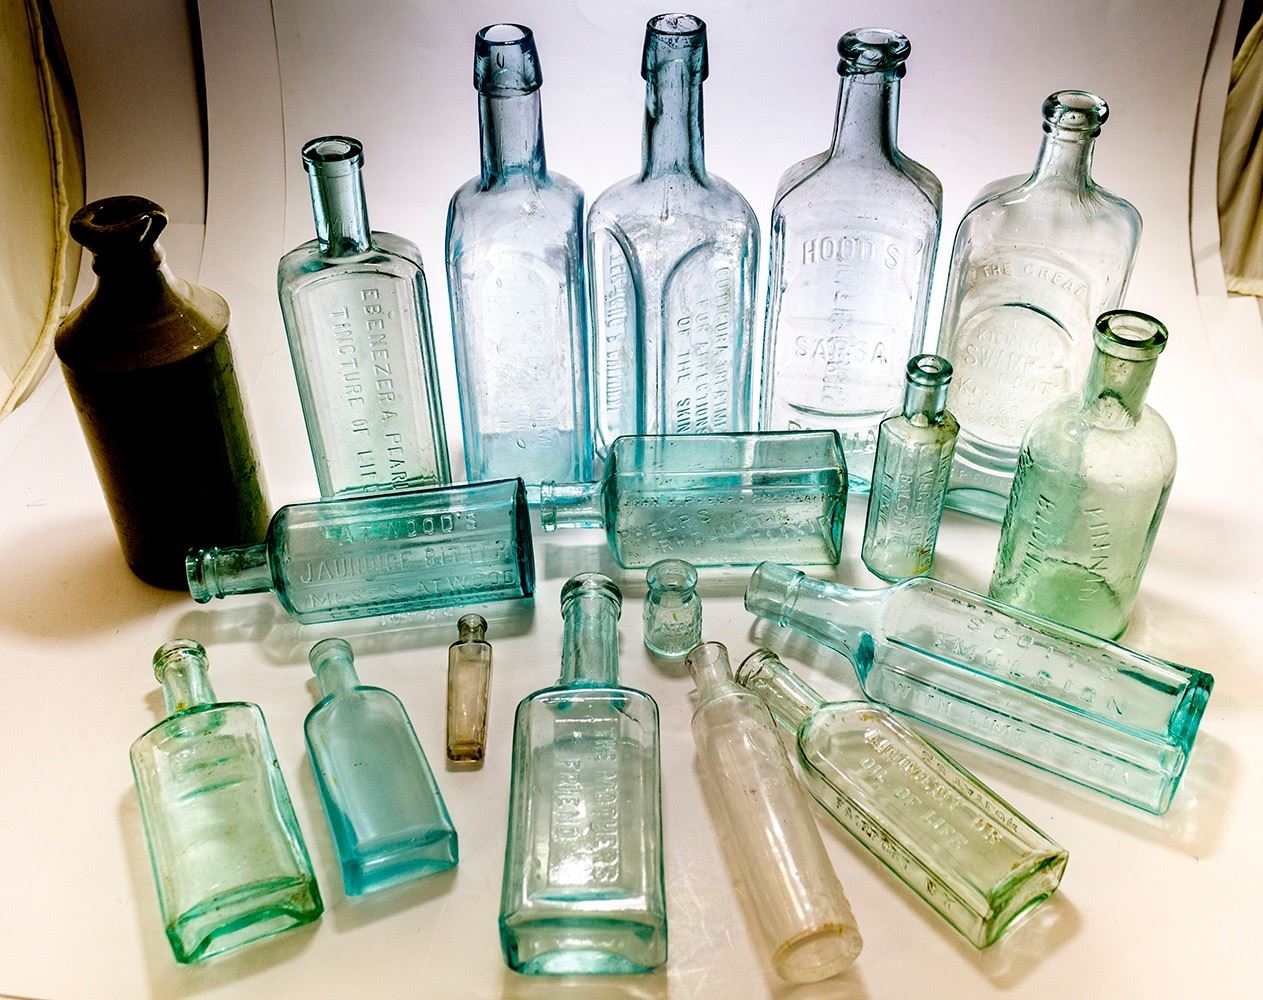 Collection of Cures, Liniments, and Magical Potions